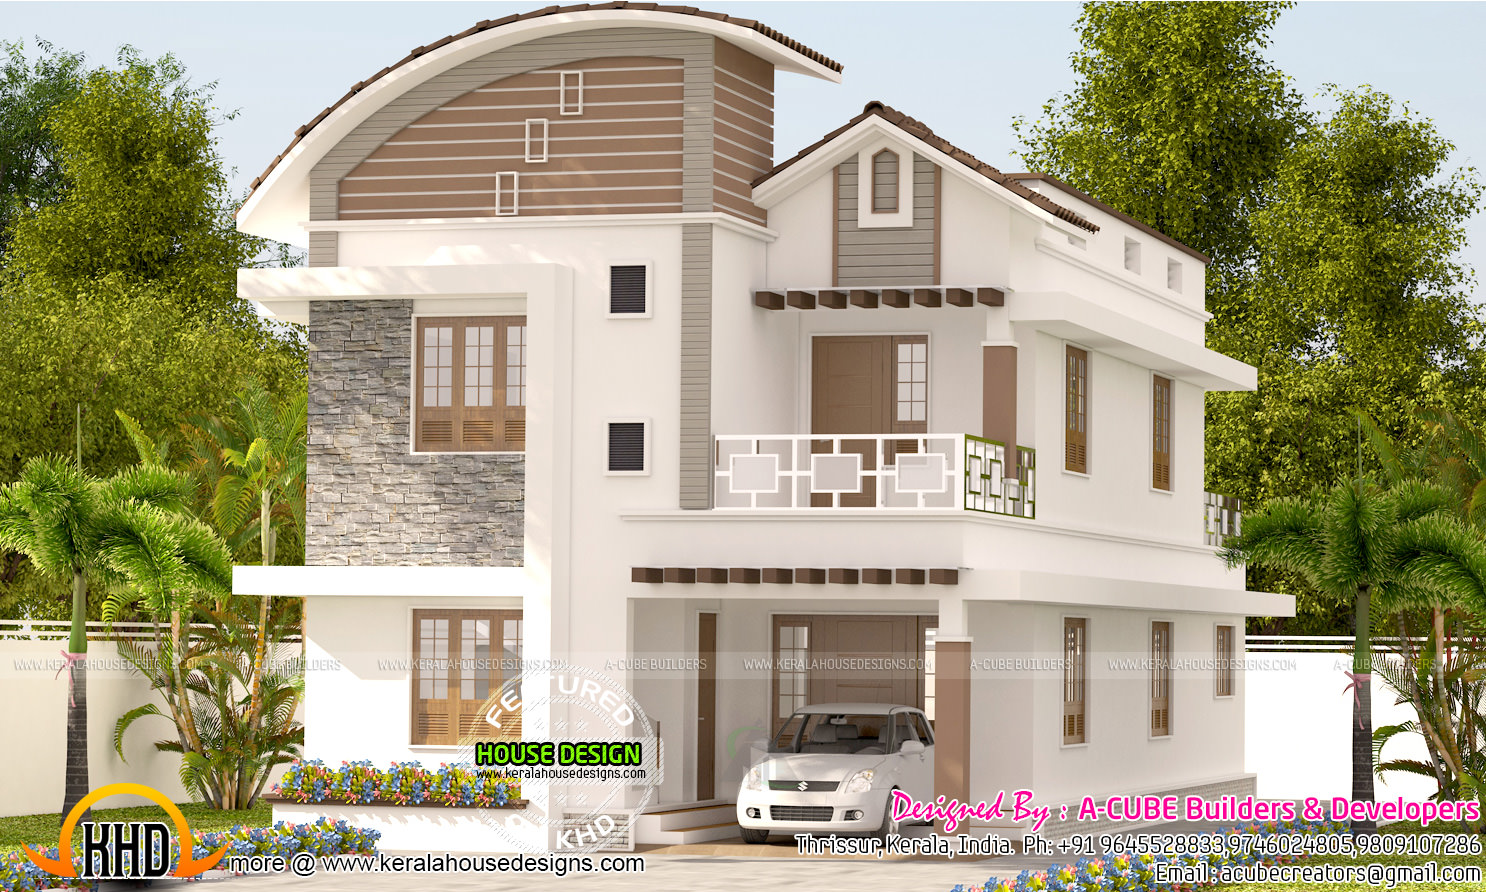 Curved Roof Mix 4 Bedroom House Kerala Home Design And